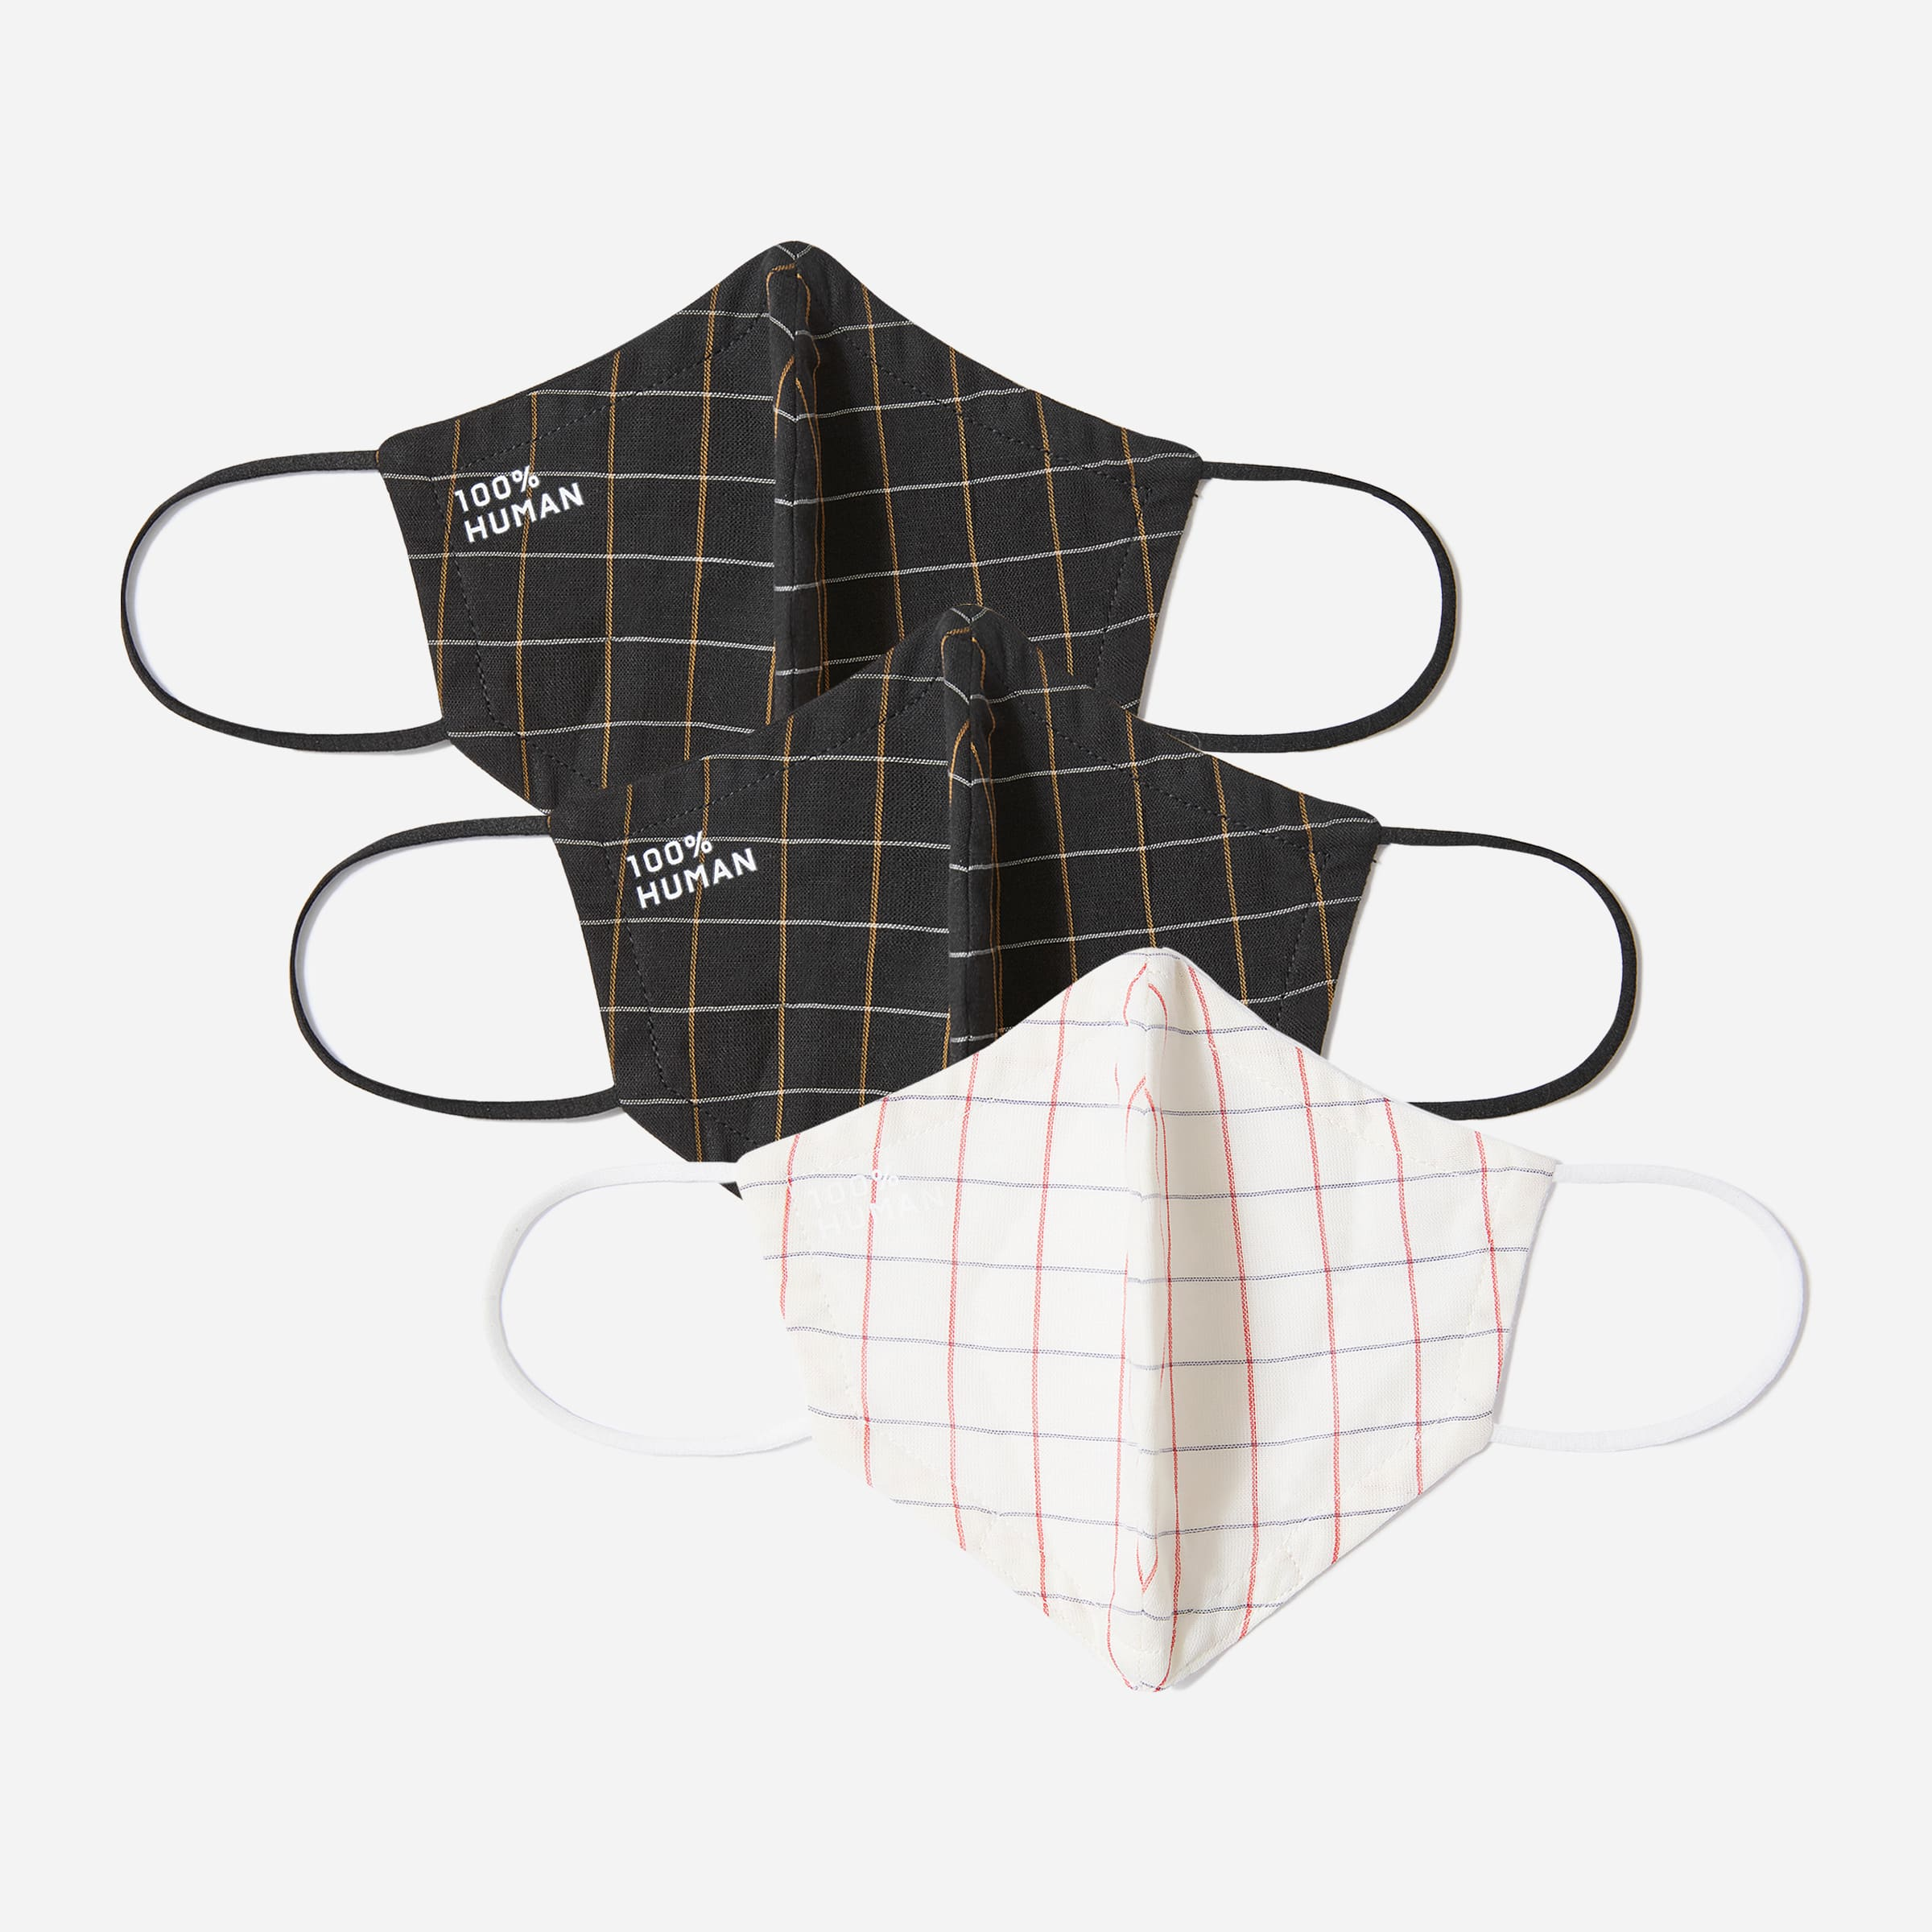 Everlane The 100% Human Face Mask 3-Pack